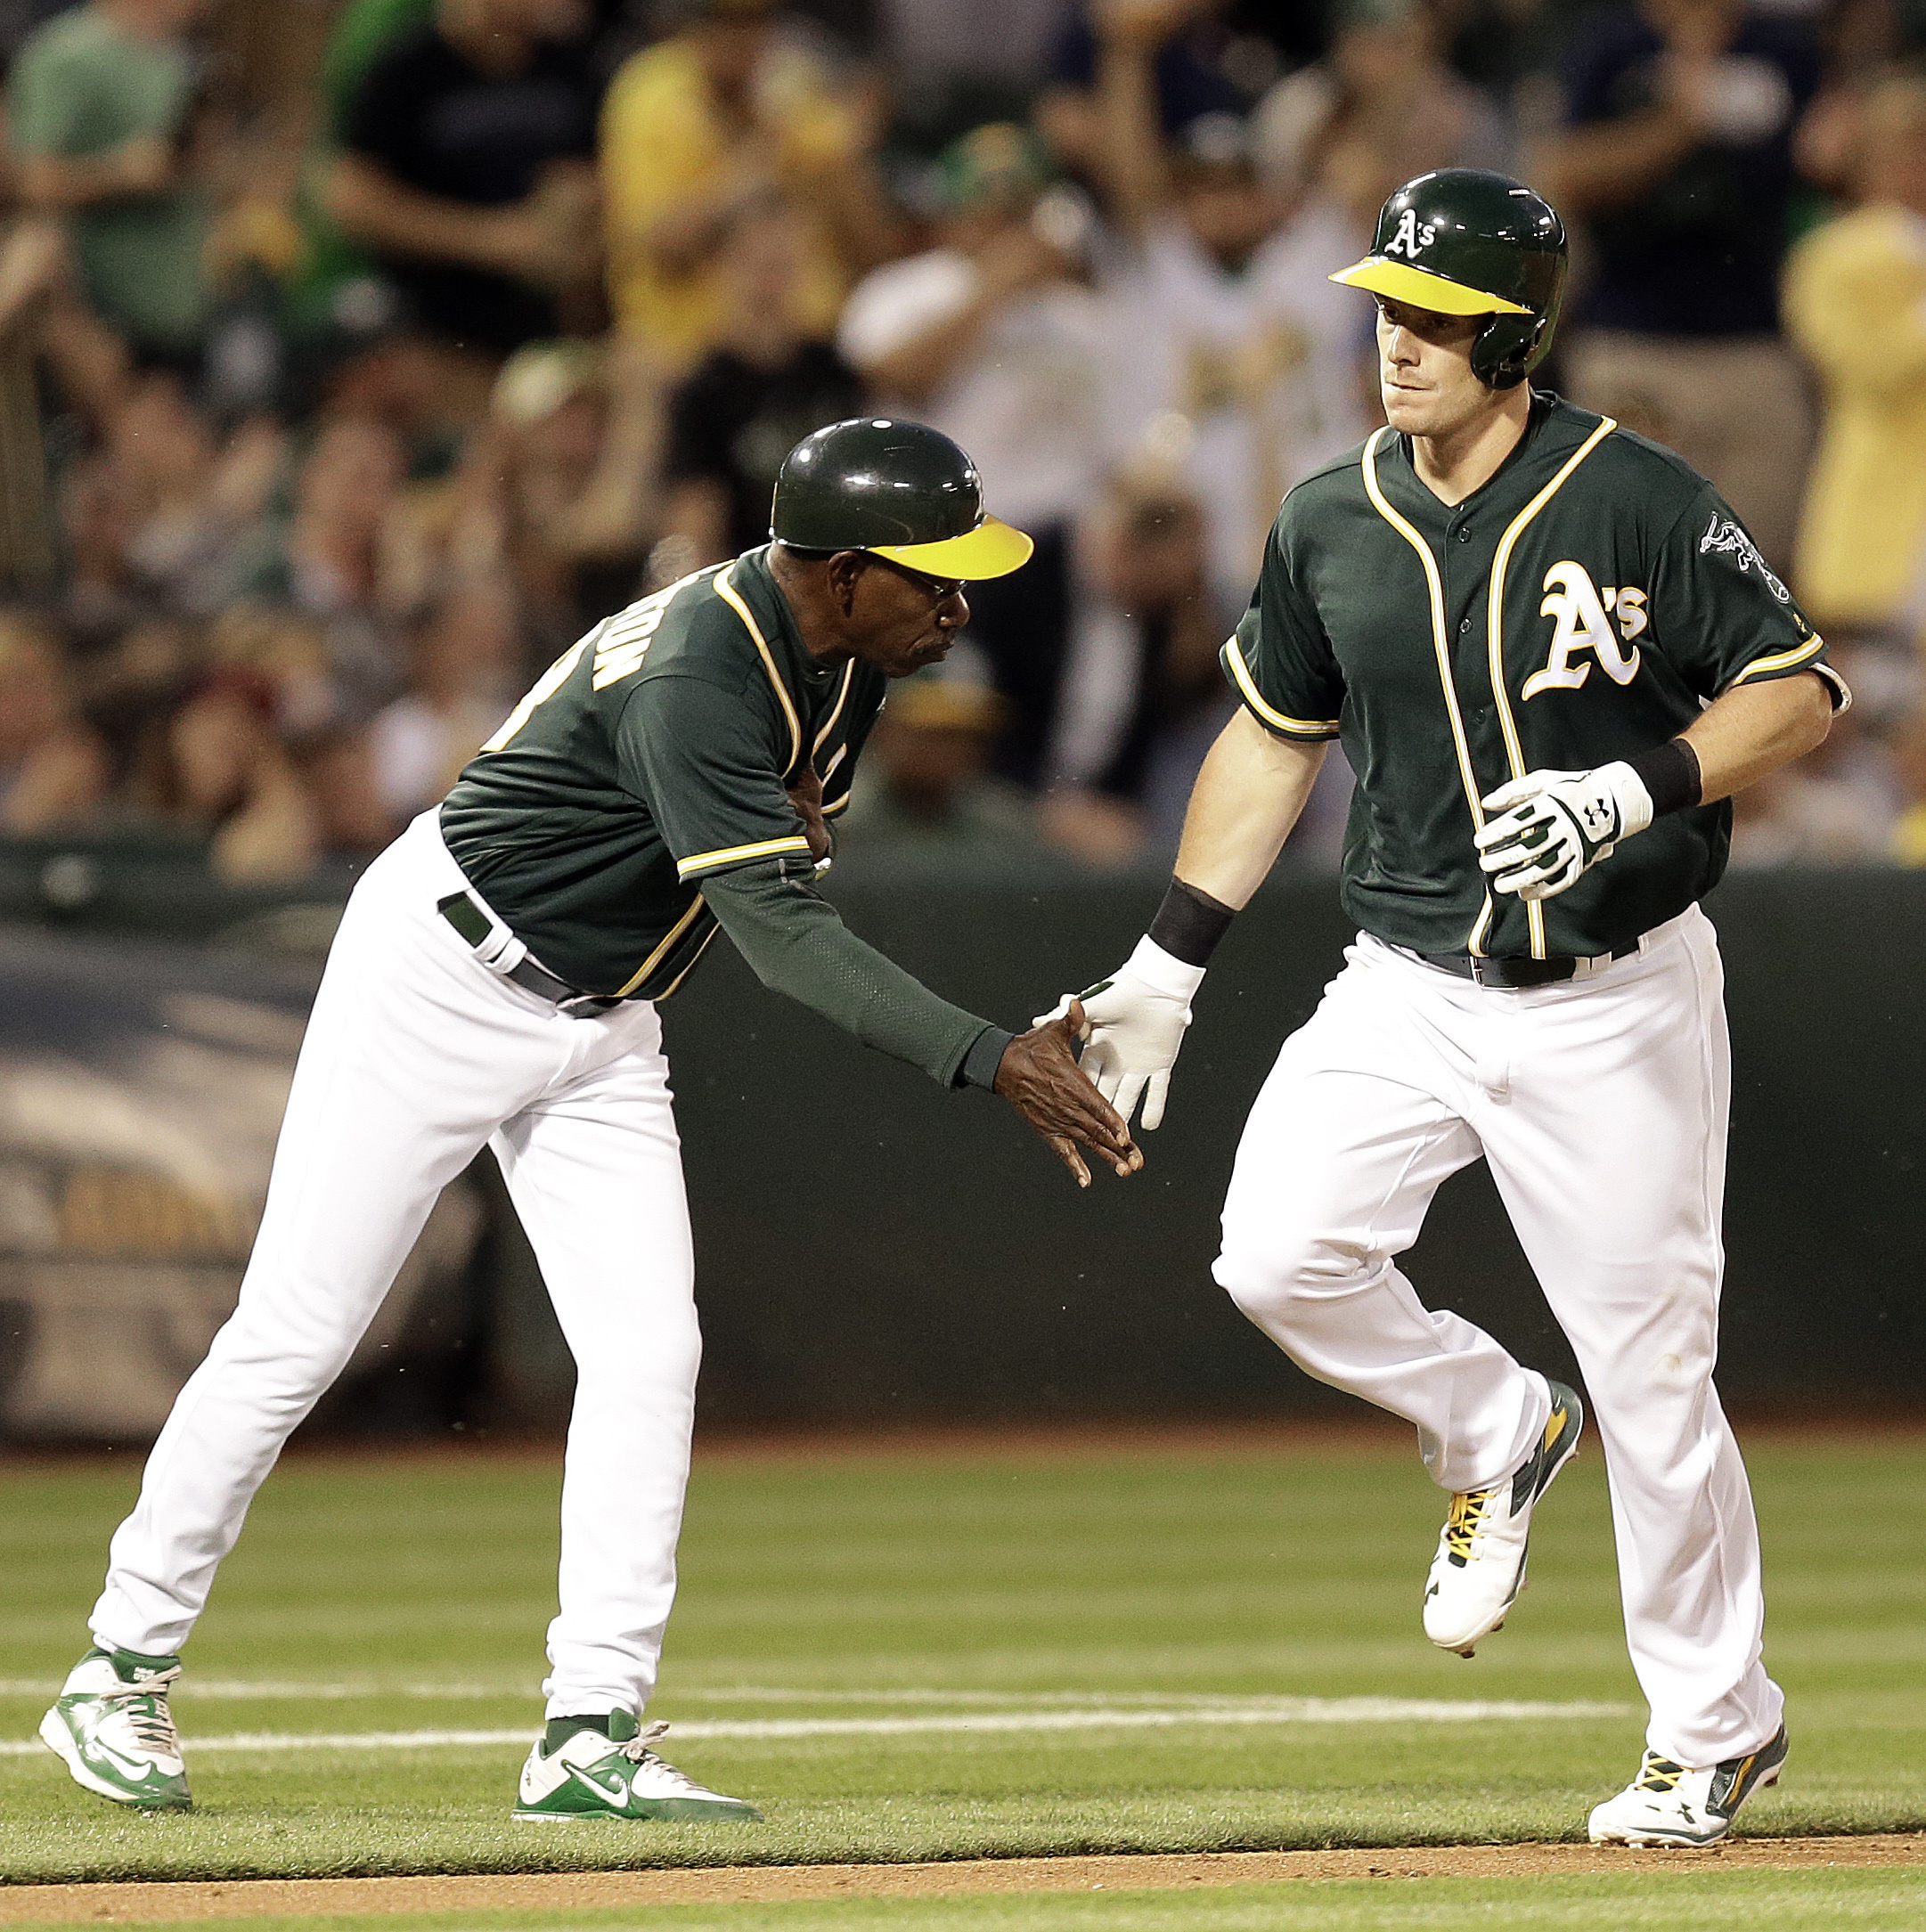 Oakland Athletics' Mark Canha, right, is congratulated by third base coach Ron Washington after hitting a home run off Chicago White Sox pitcher Carlos Rodon during the second inning of a baseball game Wednesday, April 6, 2016, in Oakland, Calif. (AP Phot